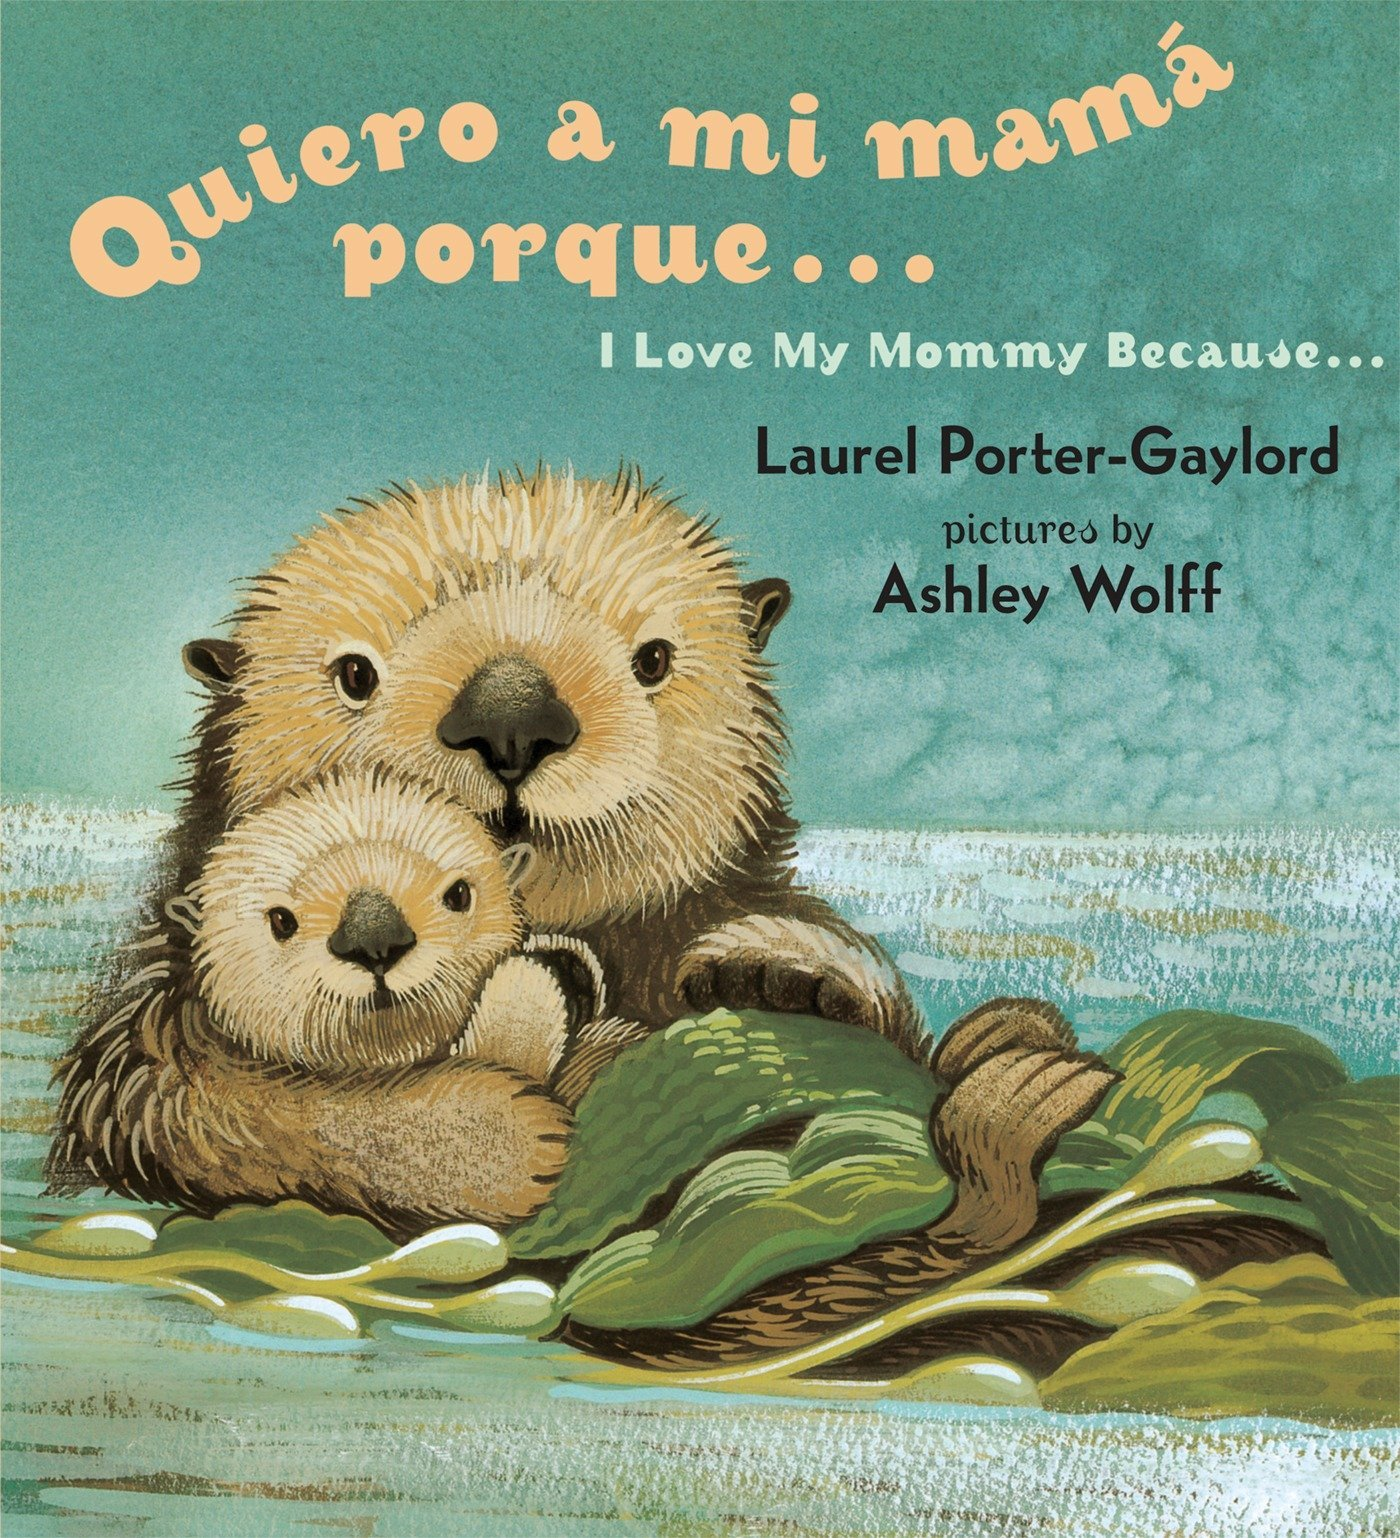 Quiero a mi Mama Porque (I Love my Mommy Because Eng/Span ed) (Spanish Edition) (Spanish) Board book – March 30, 2004 Laurel Porter Gaylord Ashley Wolff 0525472487 Animals - General